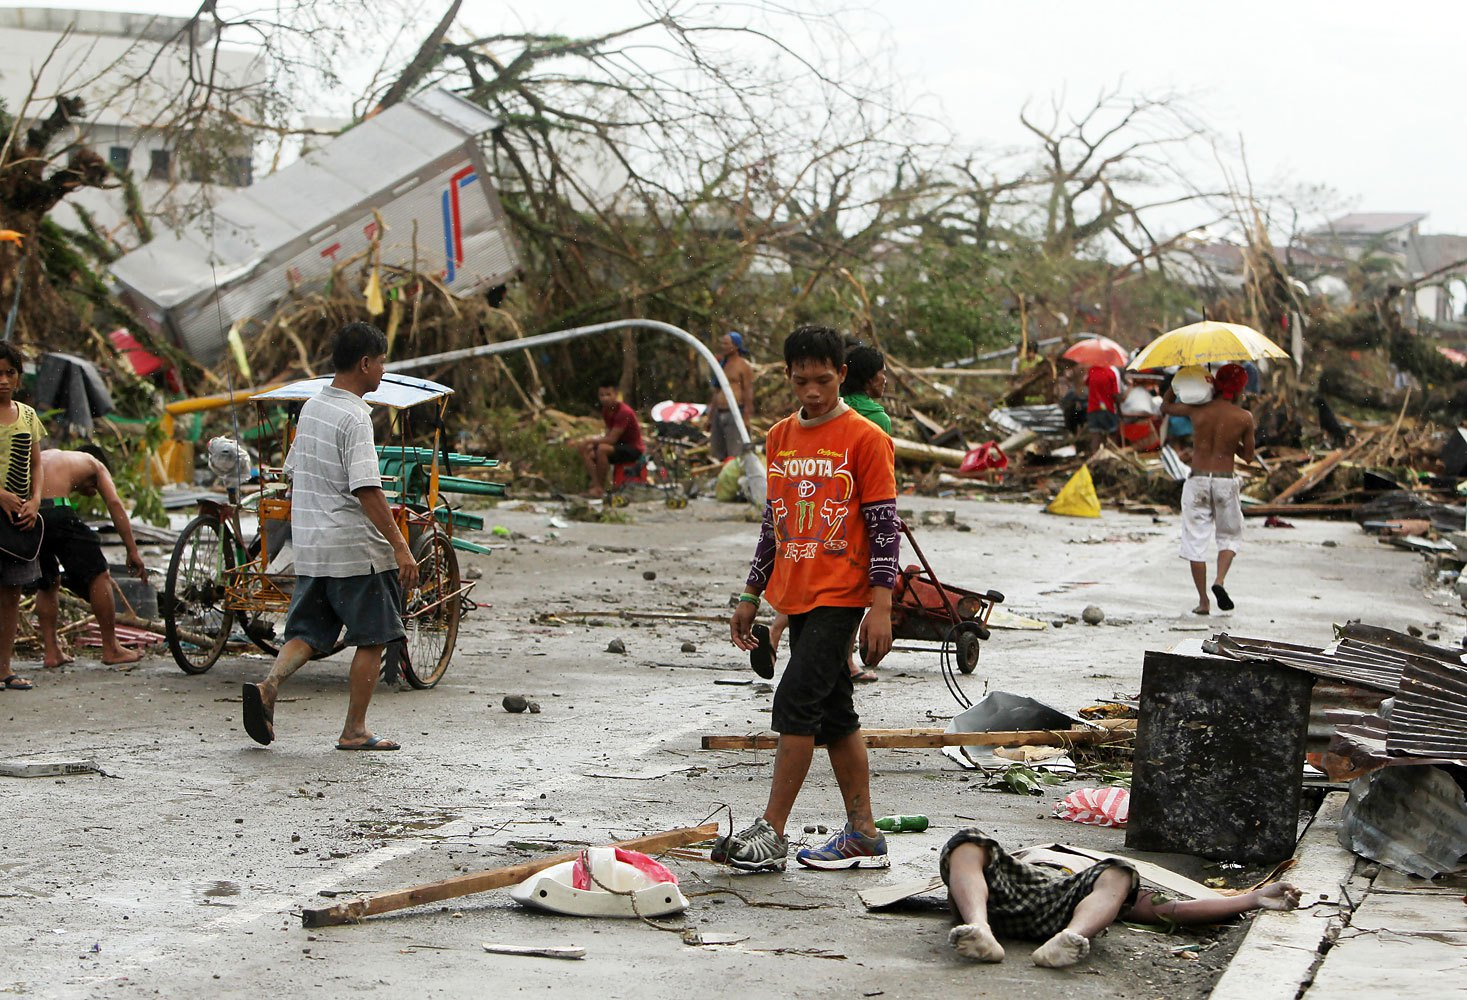 Filipinos walk past a victim left on the side of a street in the typhoon-devastated city of Tacloban, in the Philippines' Leyte province, on Nov. 9, 2013